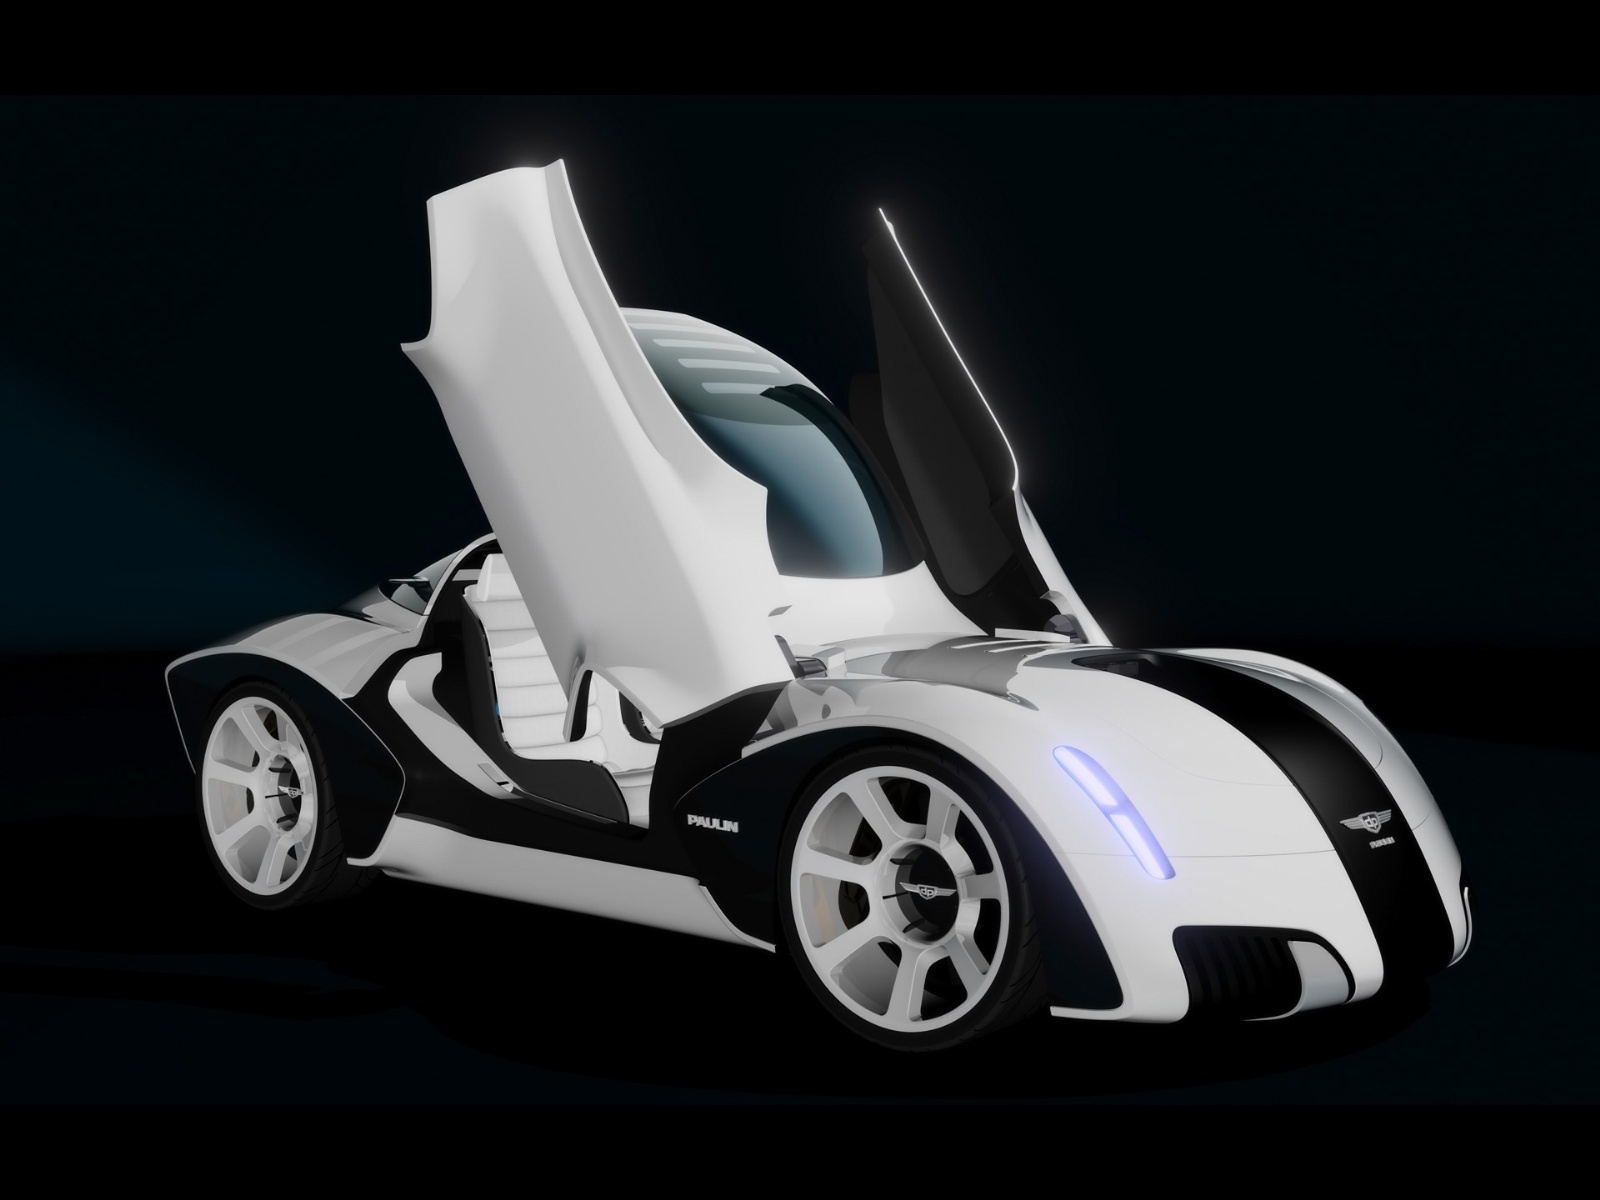 2007 Paulin VR Concept Image